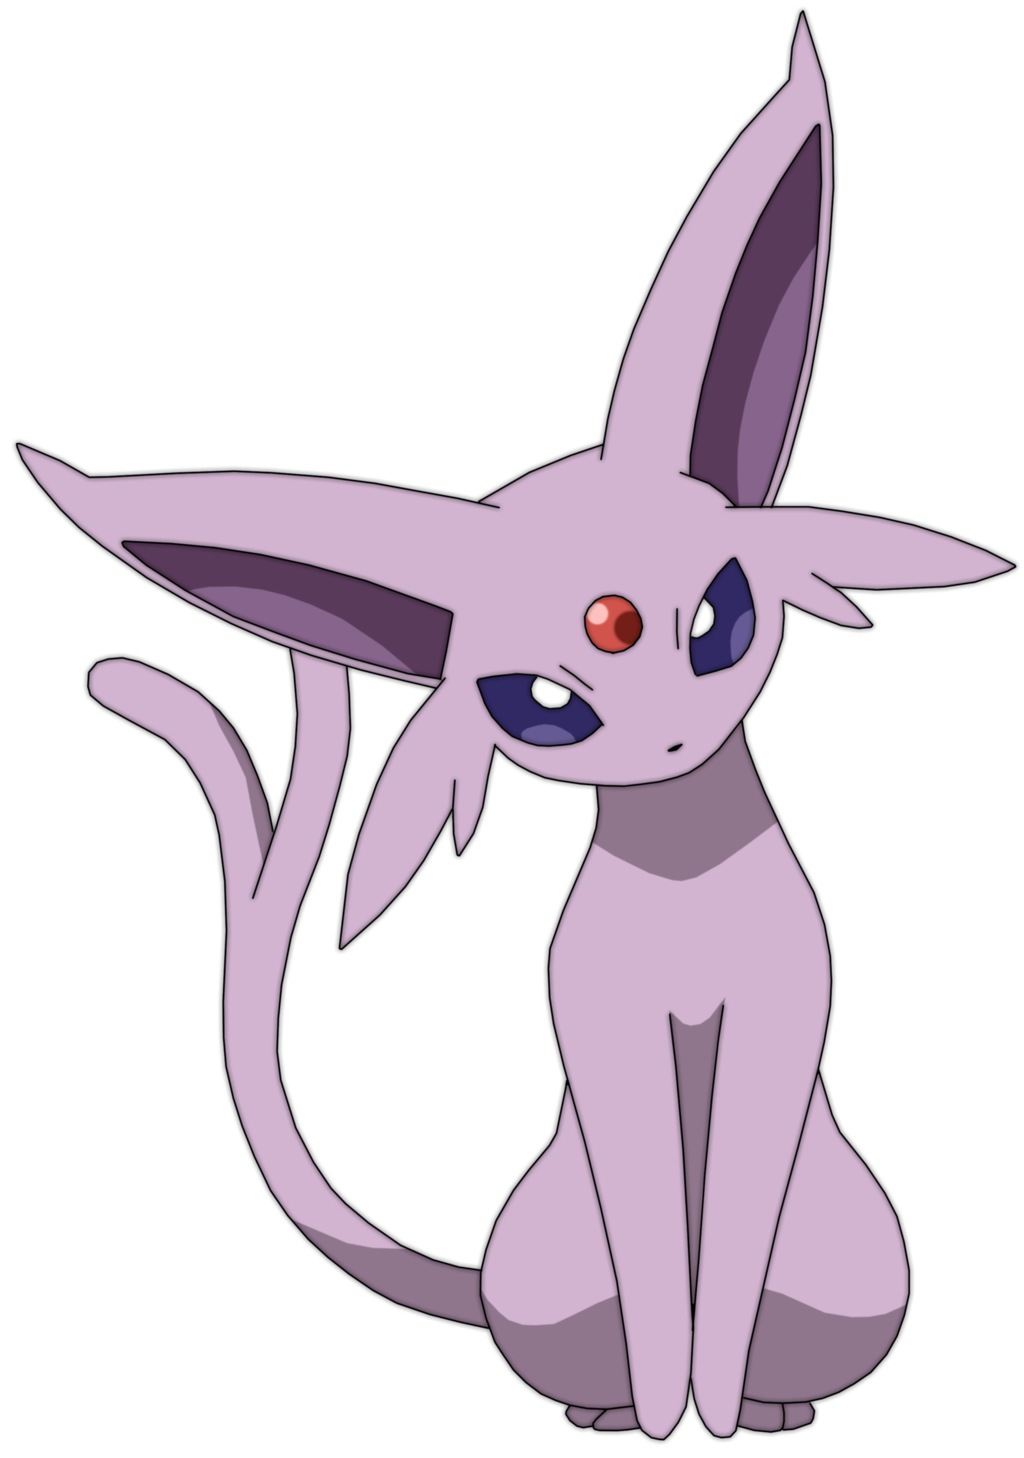 picture free Image by uraharjourkdiayynrataichou d. Espeon transparent